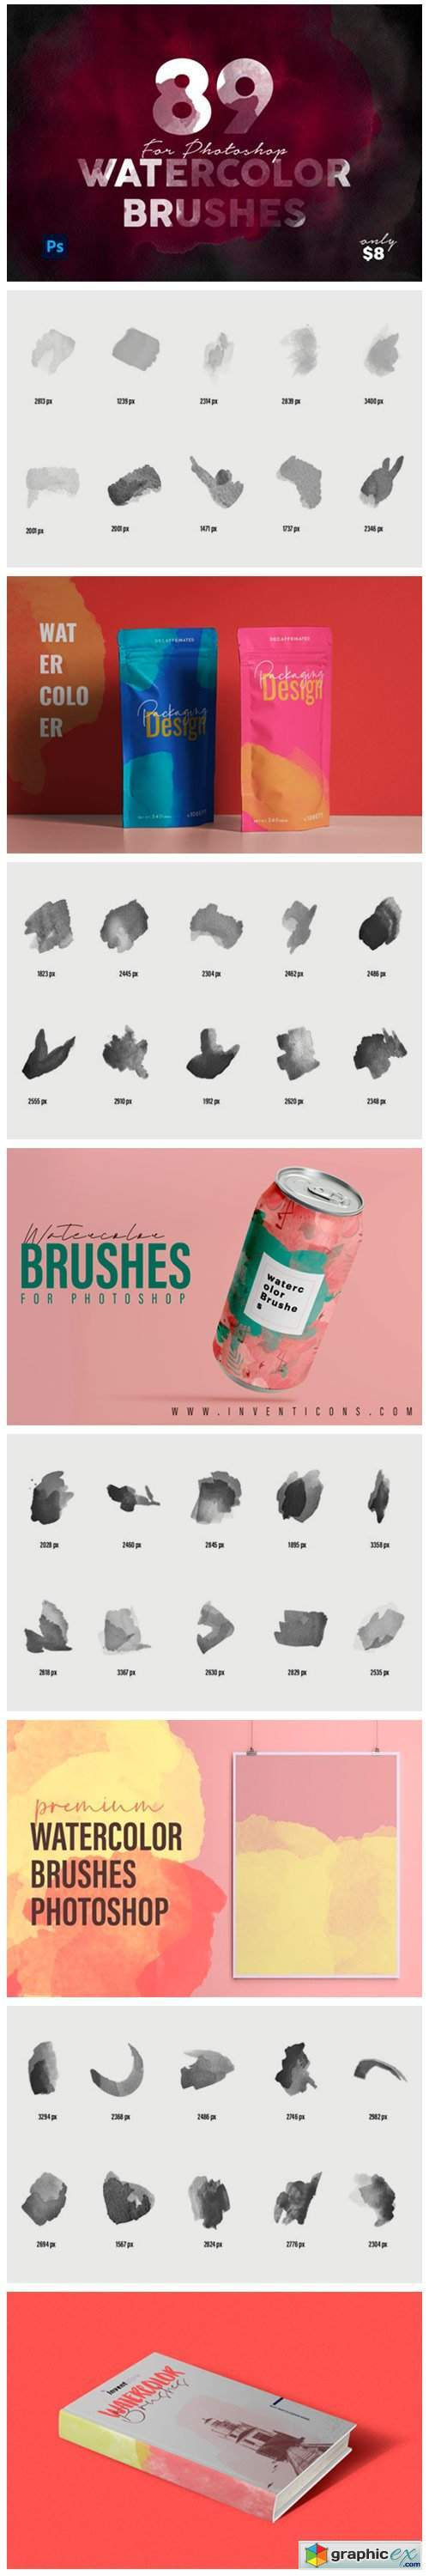 Realistic Watercolor fotoshop Brushes